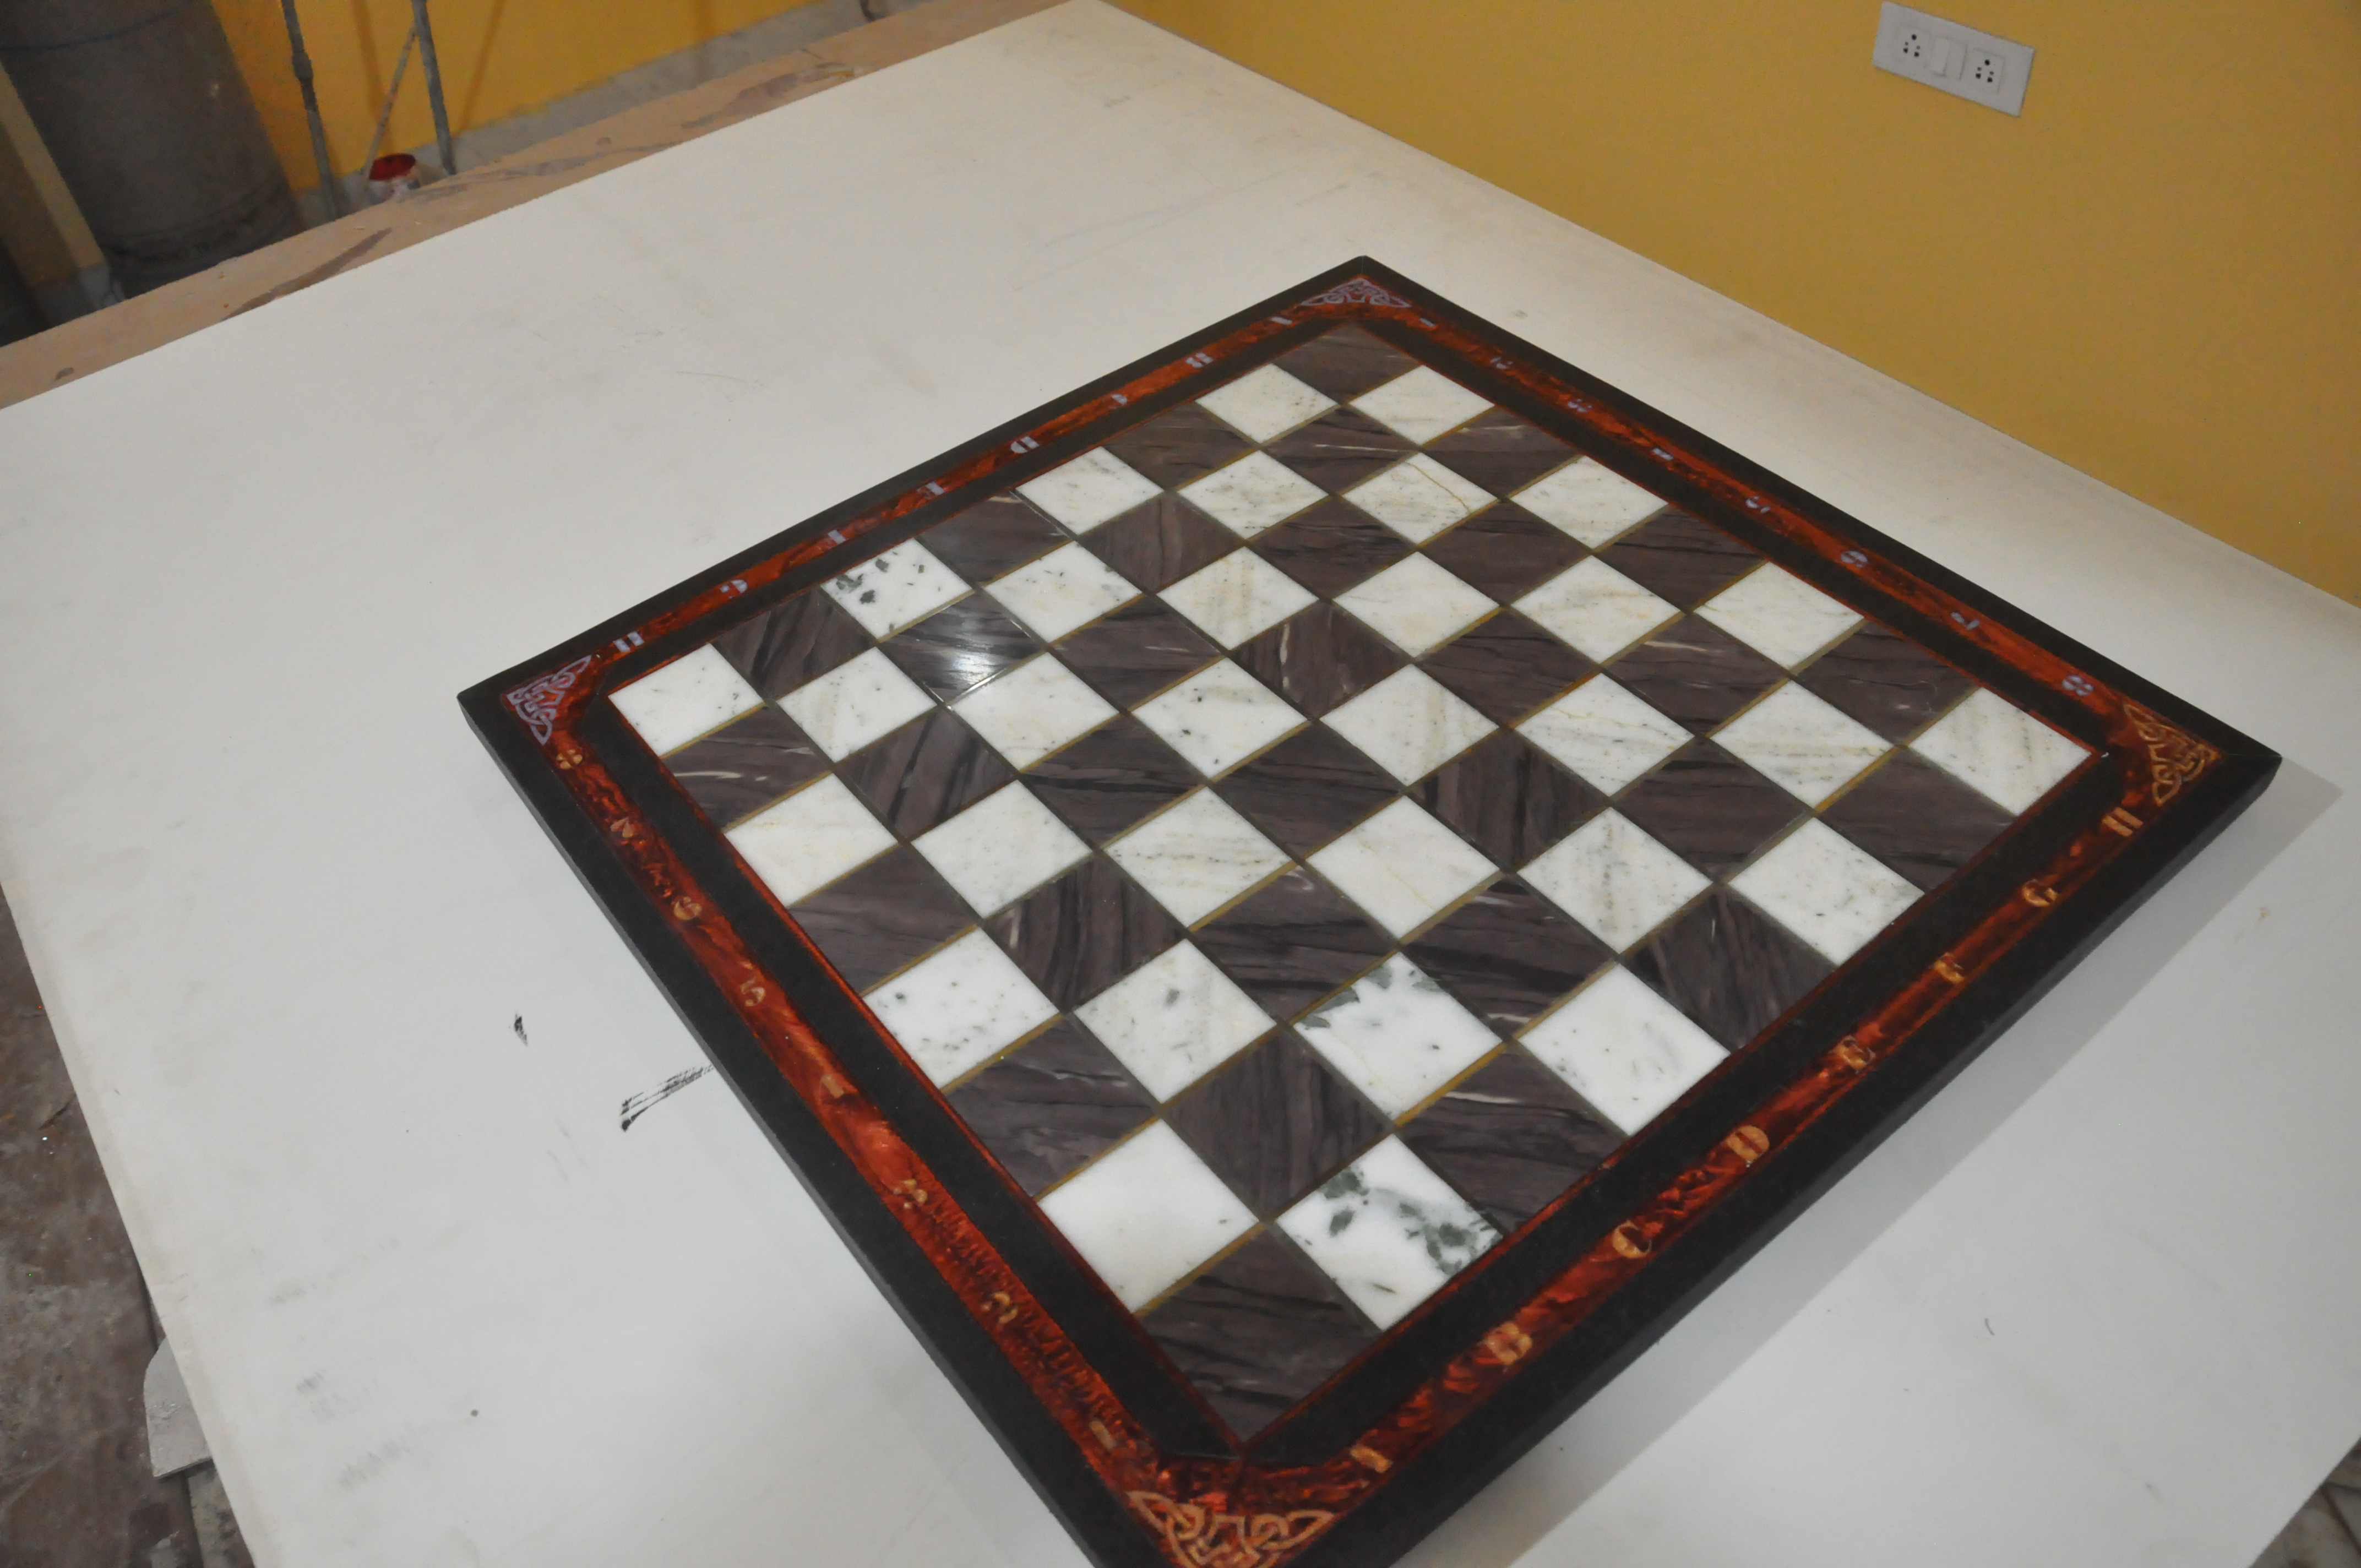 Picture of Stone Chess Board Build From Scrap